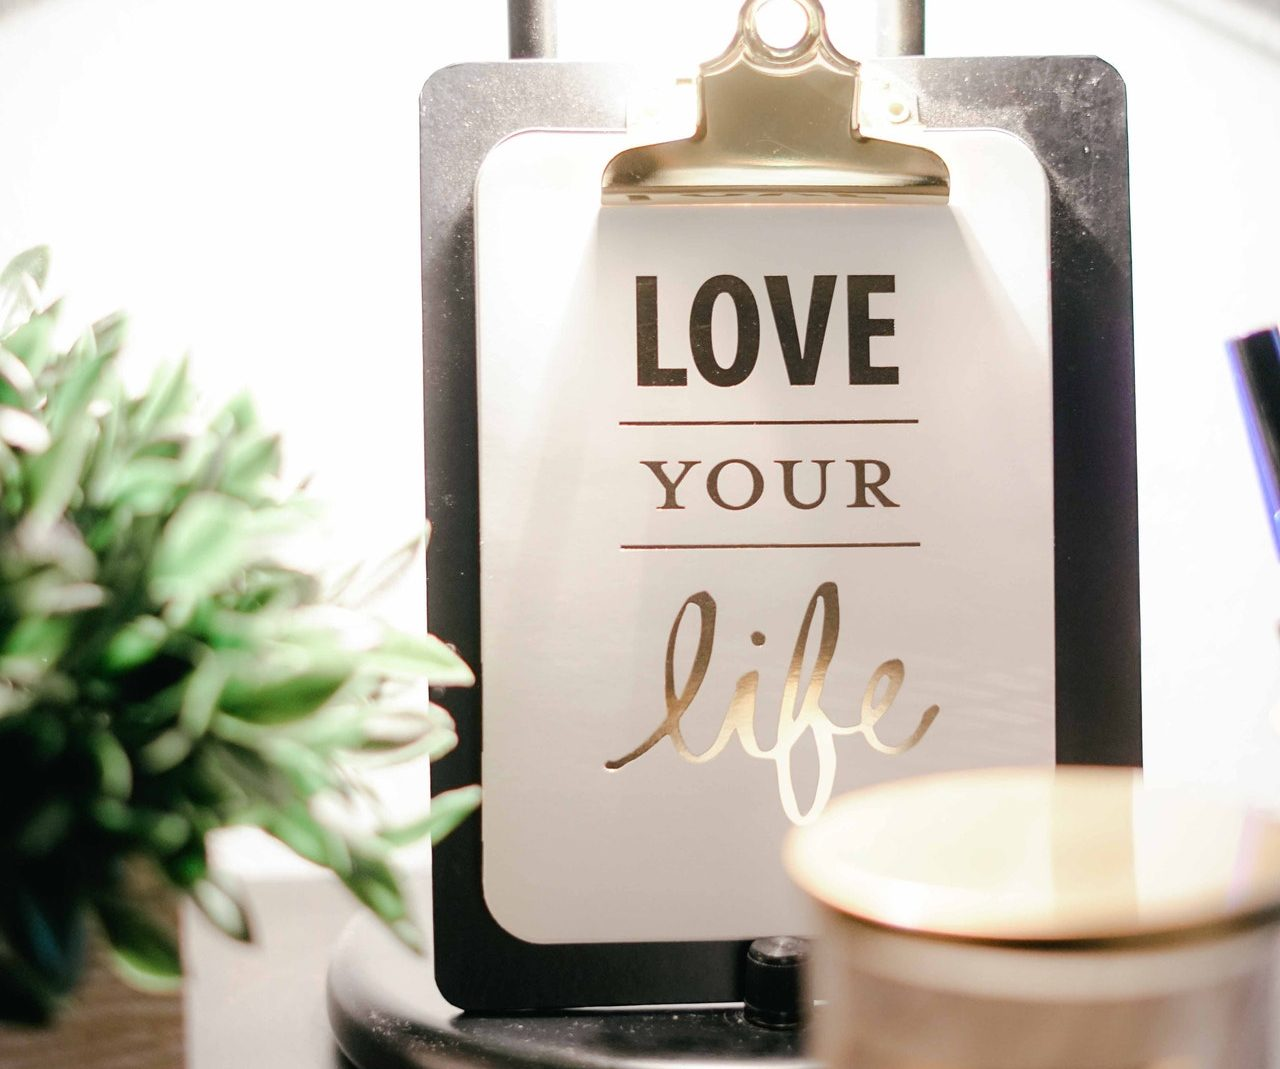 right life coach love your life sign